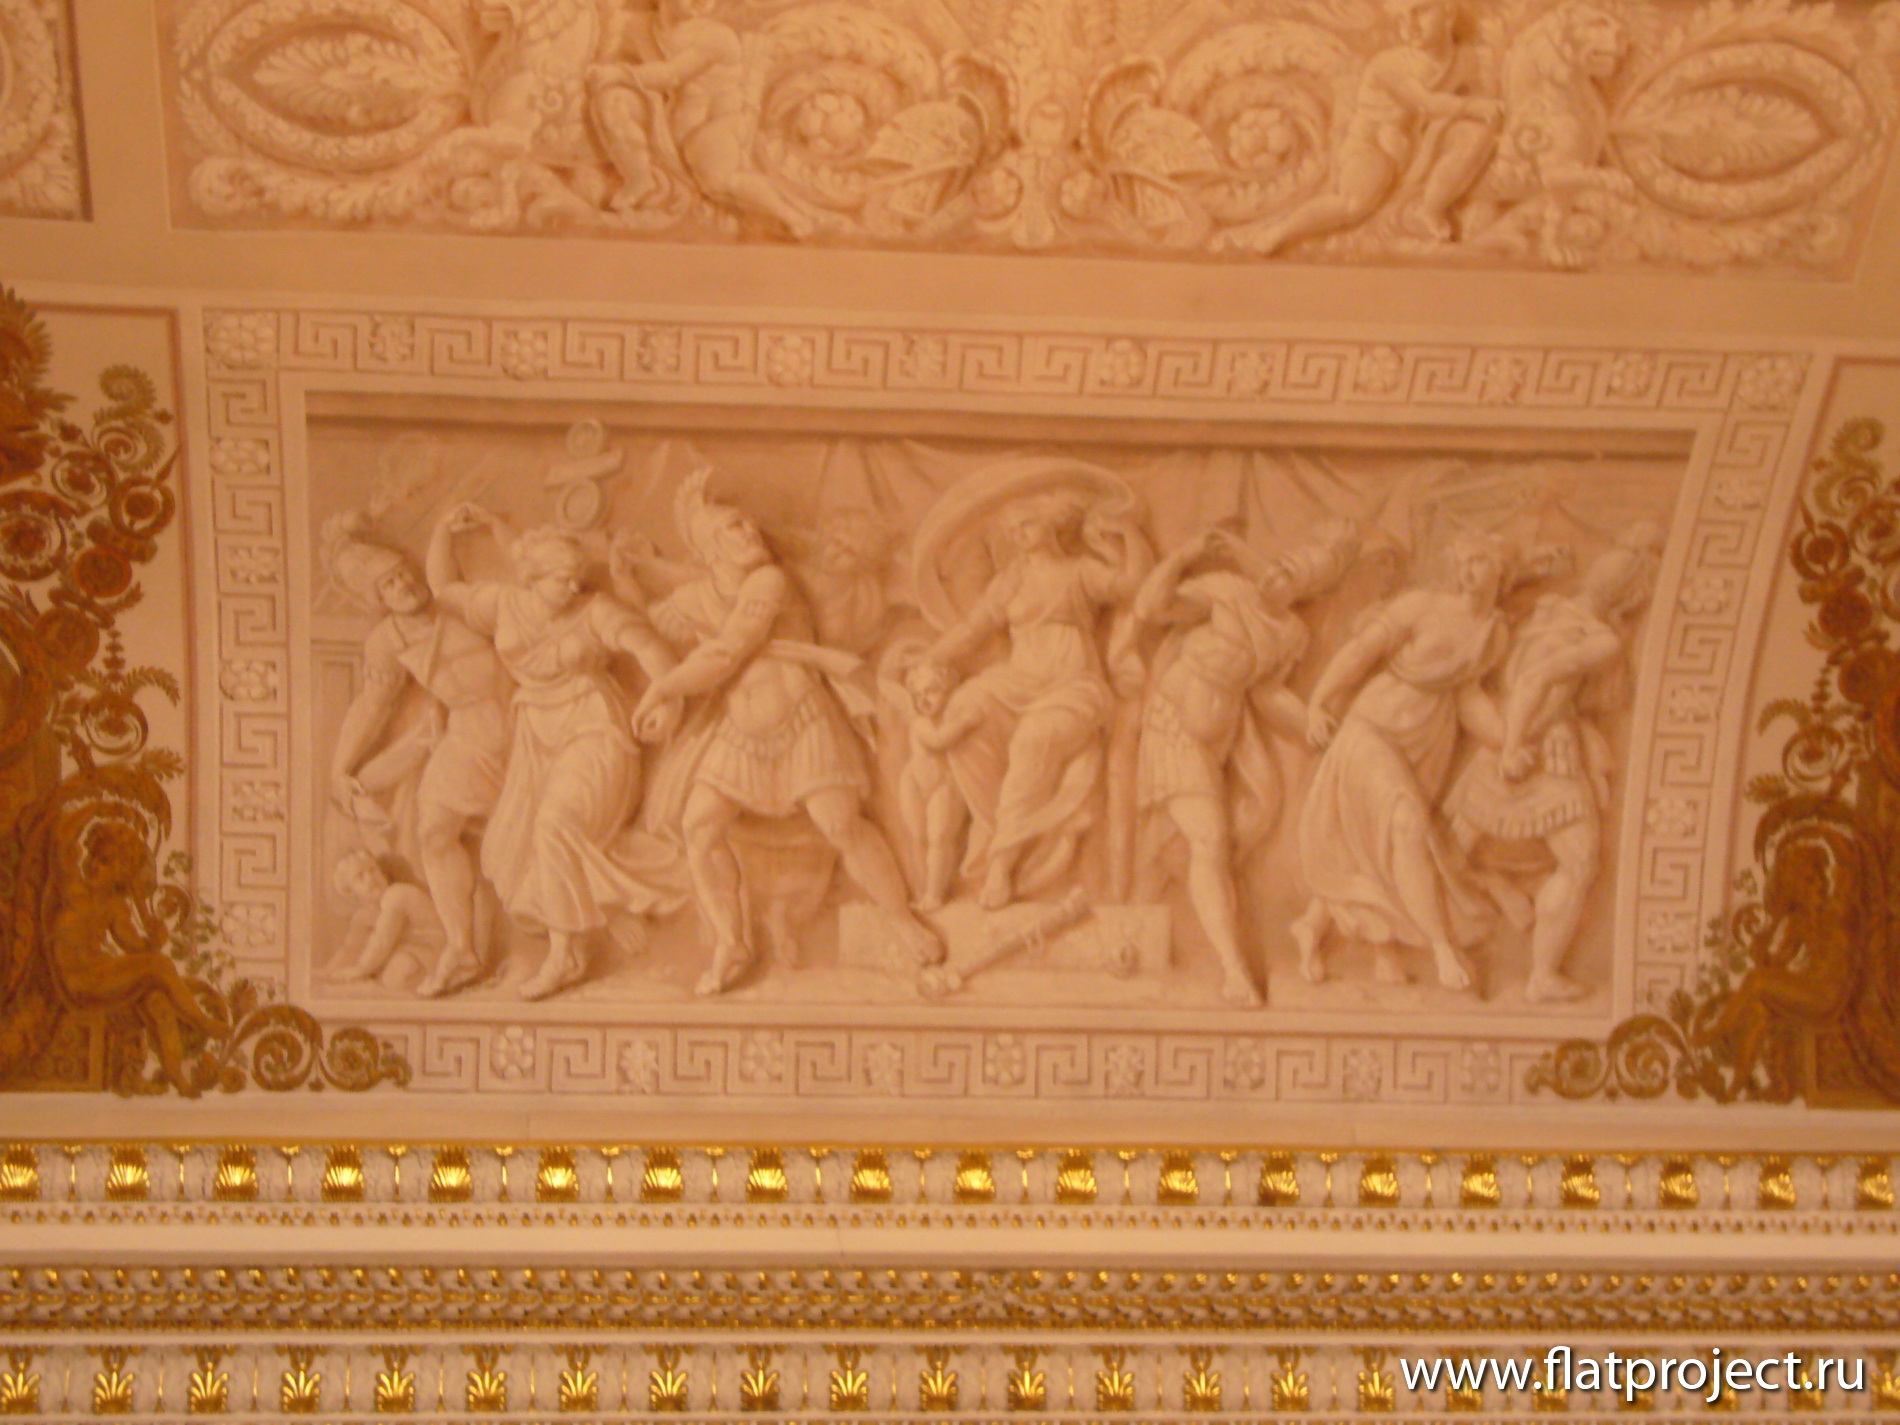 The State Russian museum interiors – photo 14